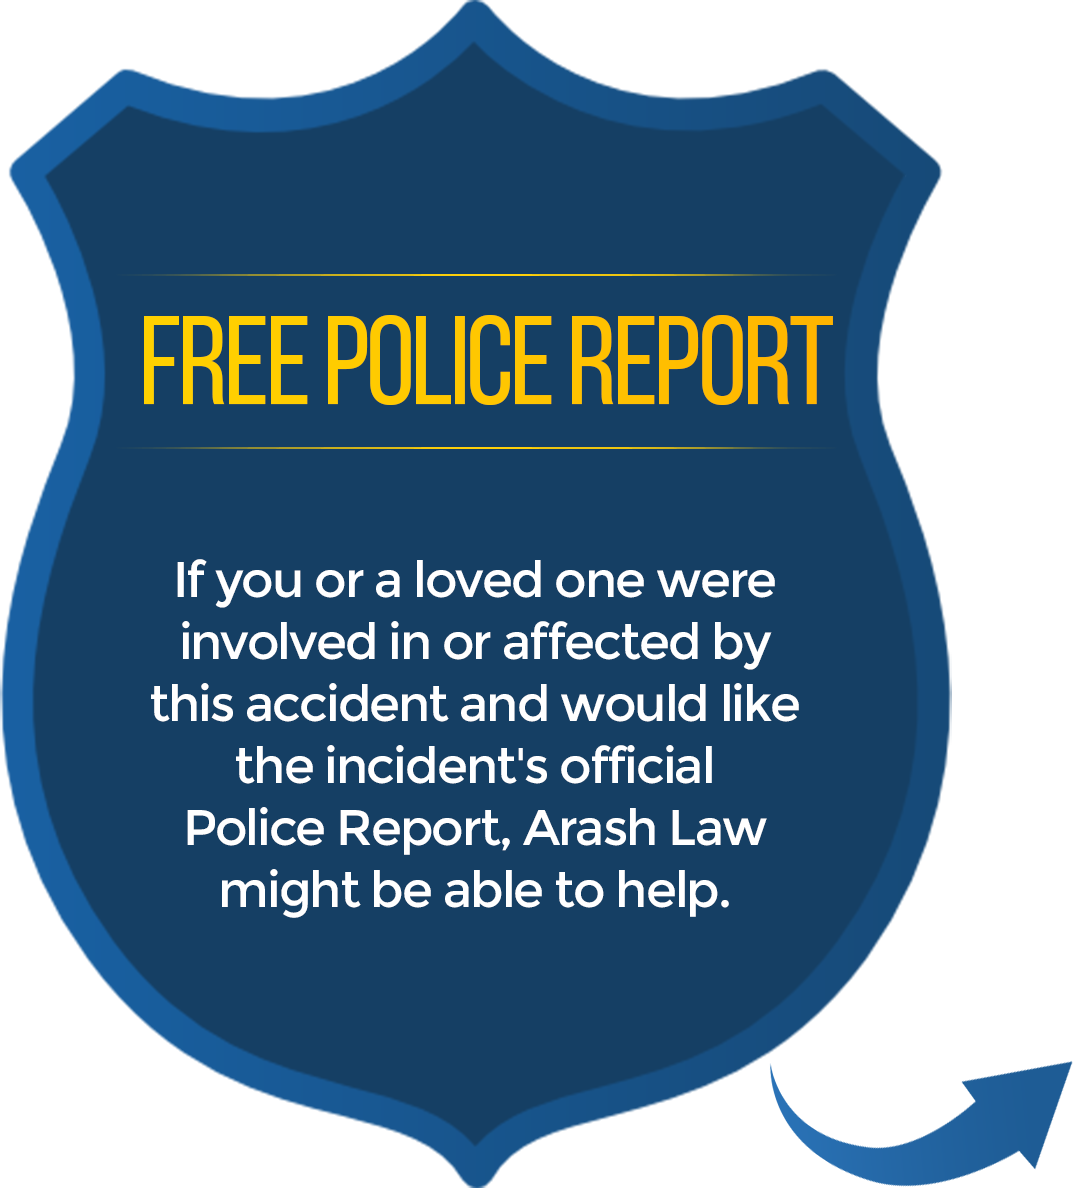 Free Police Report